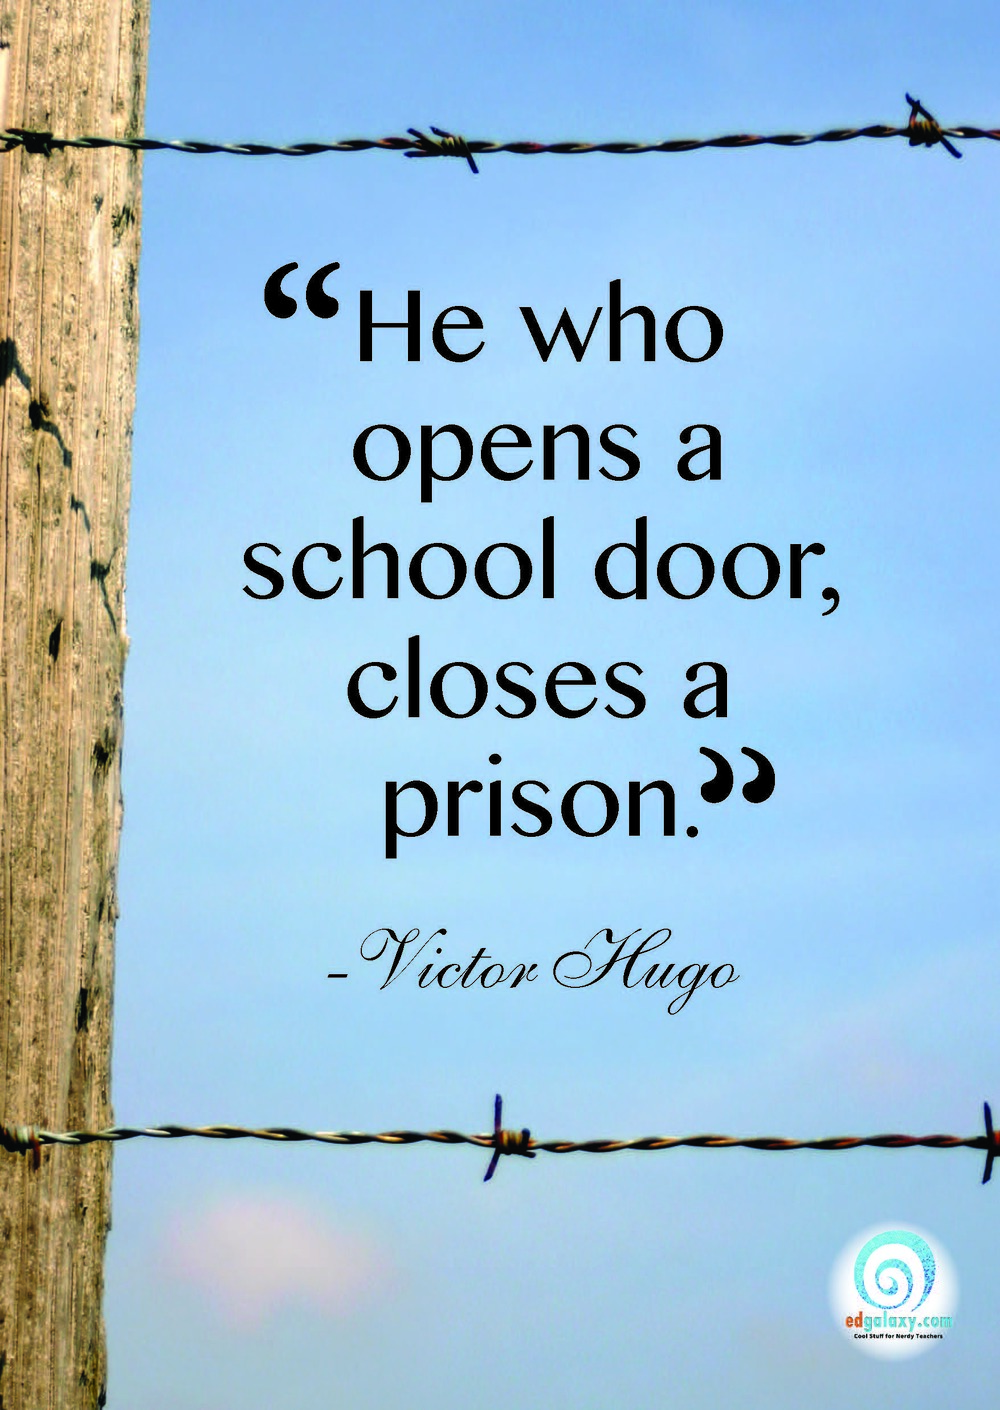 Quotes About Teaching Children Education Quotes  Famous Quotes For Teachers And Students